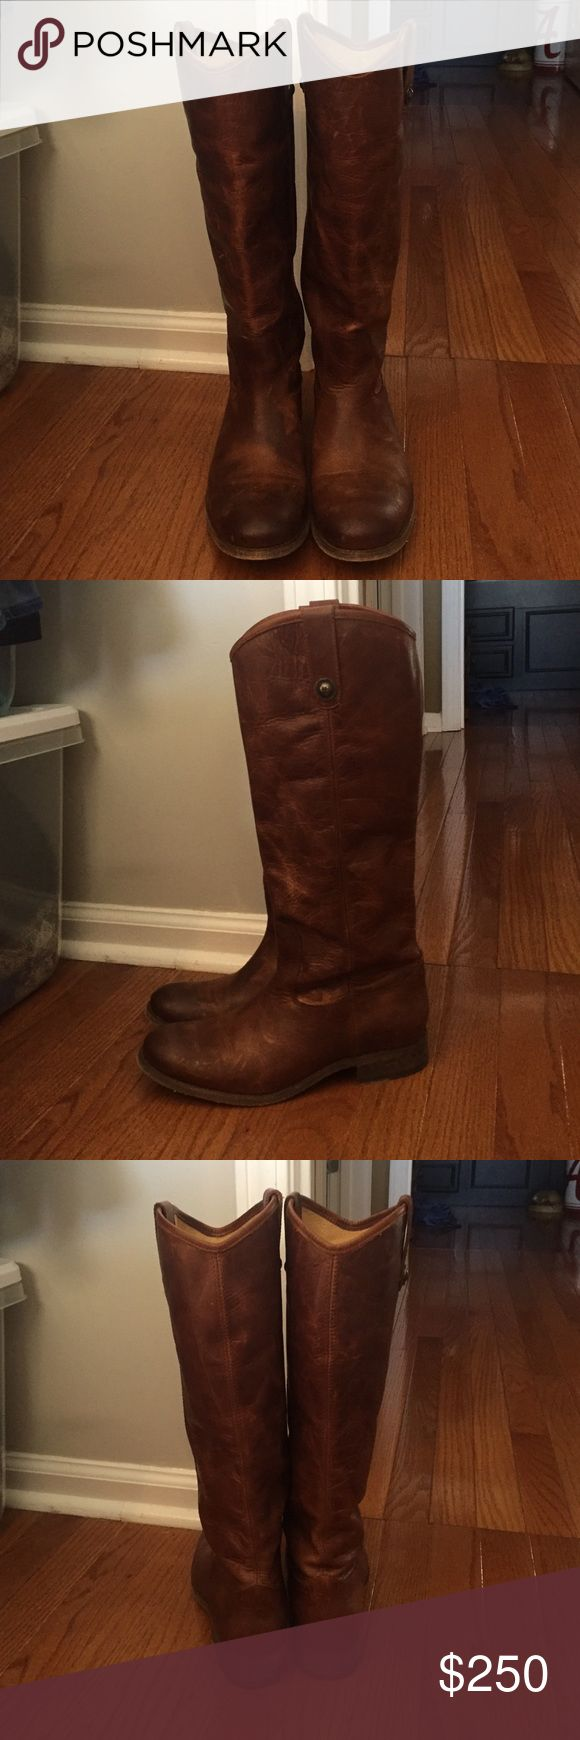 Frye Mellisa blog cognac size 8 only worn once!!!! Super cute frye boot! No problems! only wear is on the bottom! Frye Shoes Winter & Rain Boots